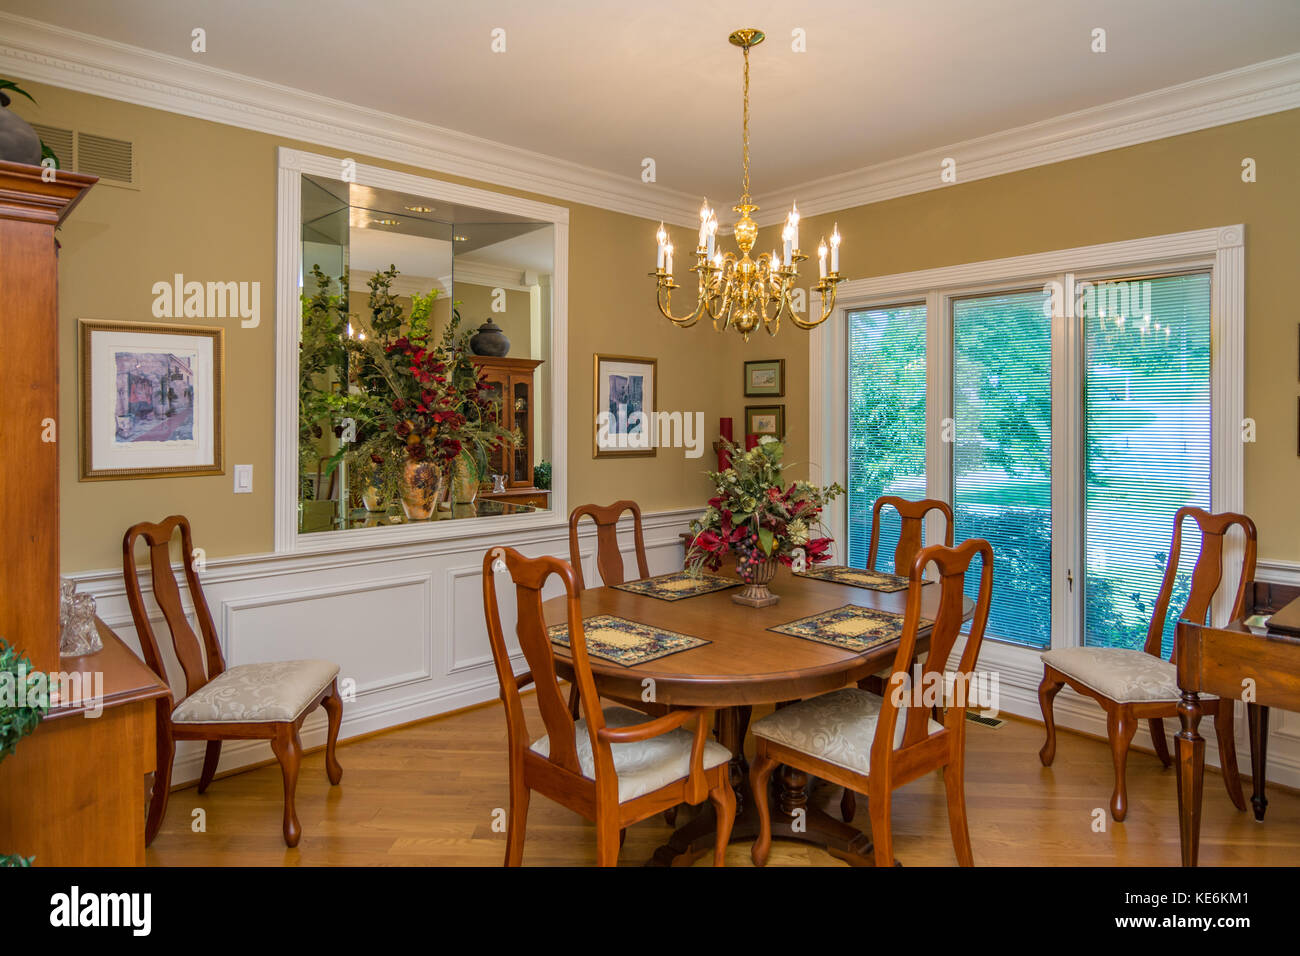 Middle Class Home Interior Dining High Resolution Stock Photography And Images Alamy